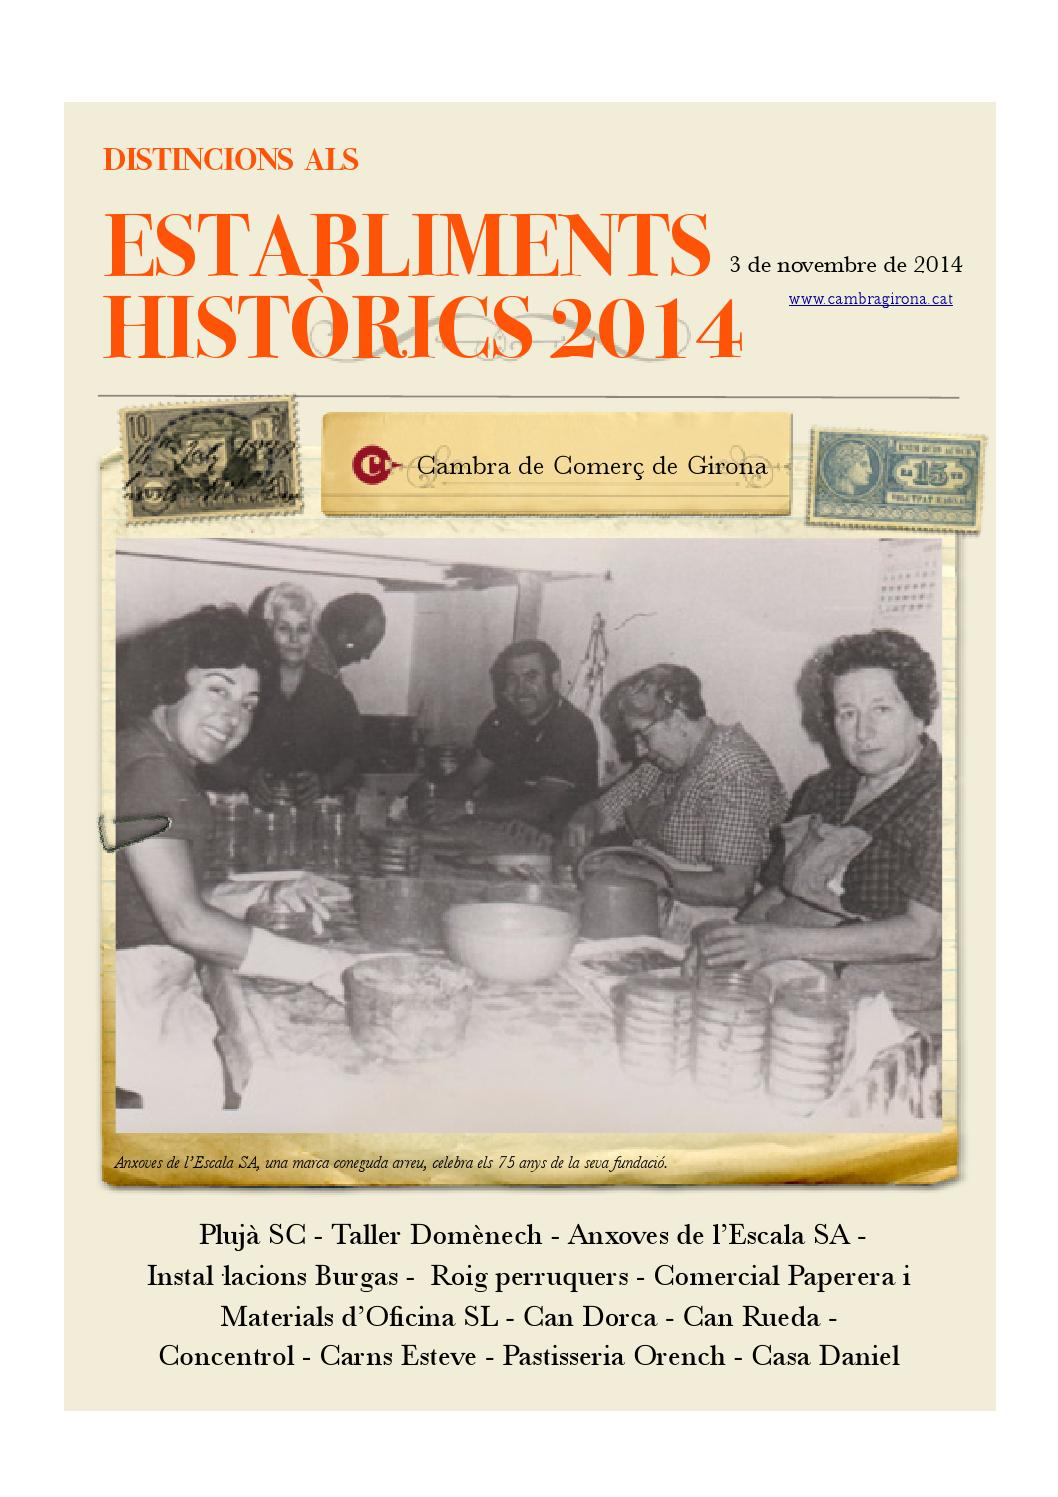 Establiments hist rics 2014 by gerard bagu issuu for Material oficina girona